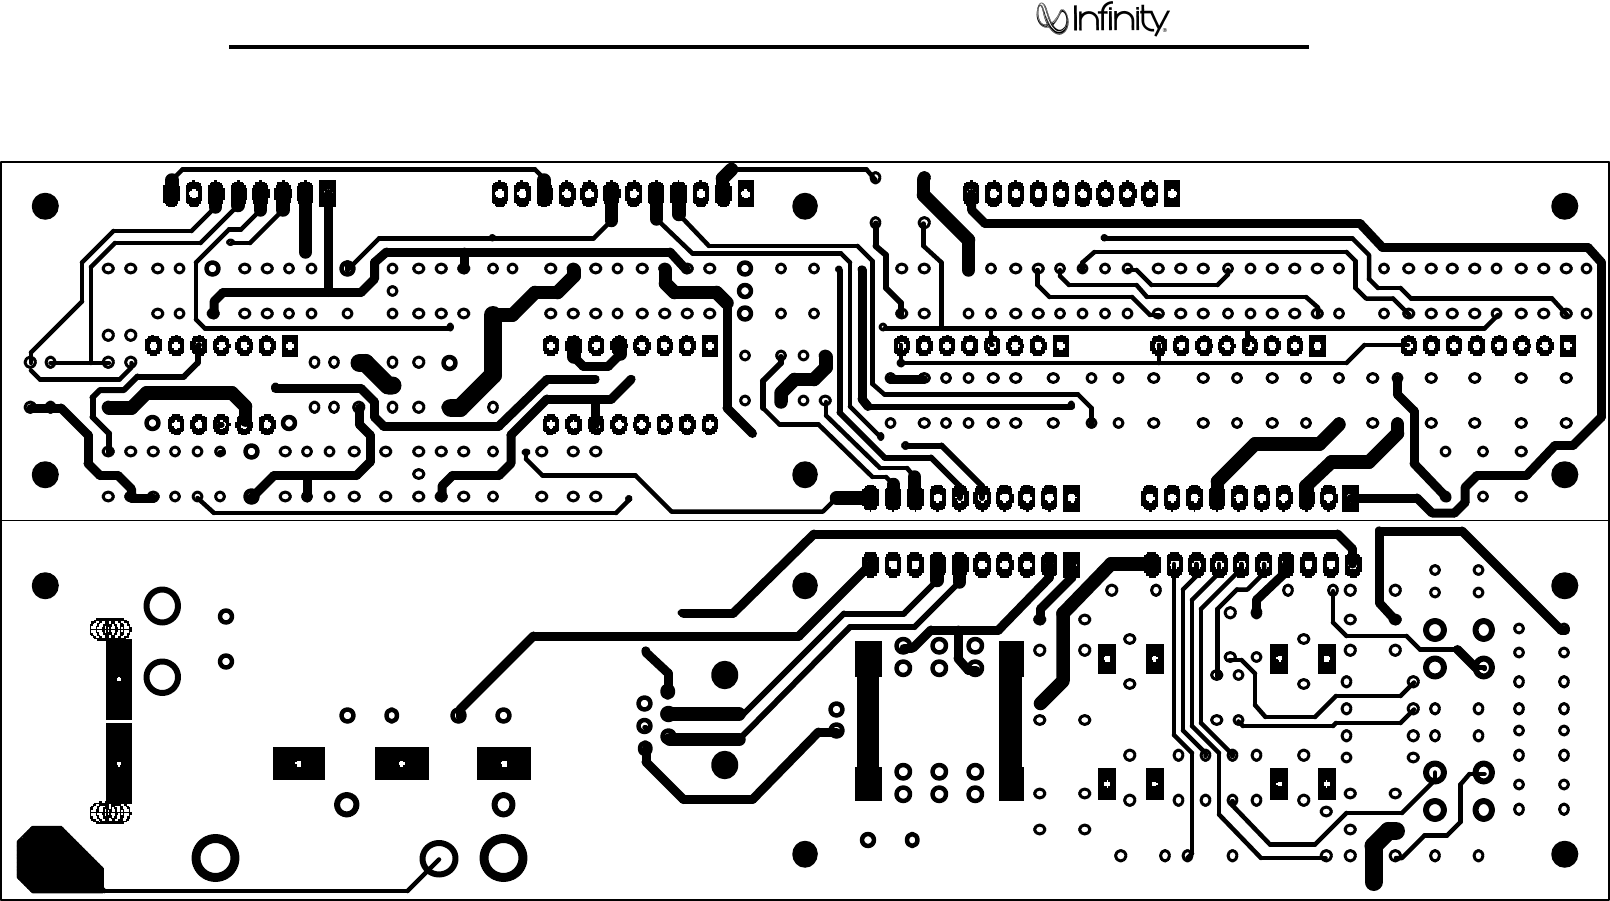 Sophisticated Infinity Reference 1262w Wiring Diagram